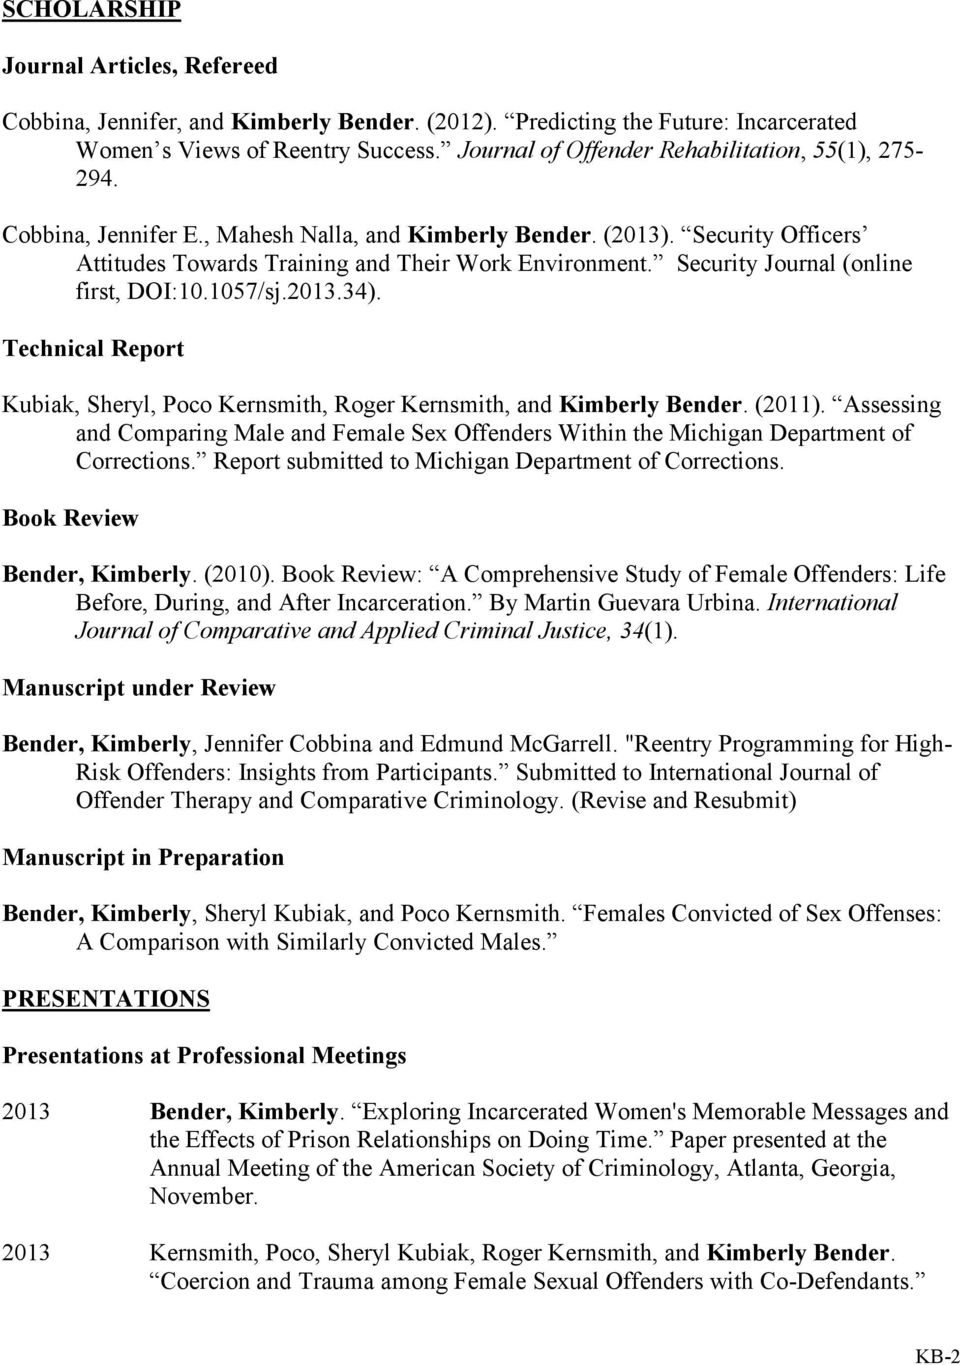 Security Journal (online first, DOI:10.1057/sj.2013.34). Technical Report Kubiak, Sheryl, Poco Kernsmith, Roger Kernsmith, and Kimberly Bender. (2011).